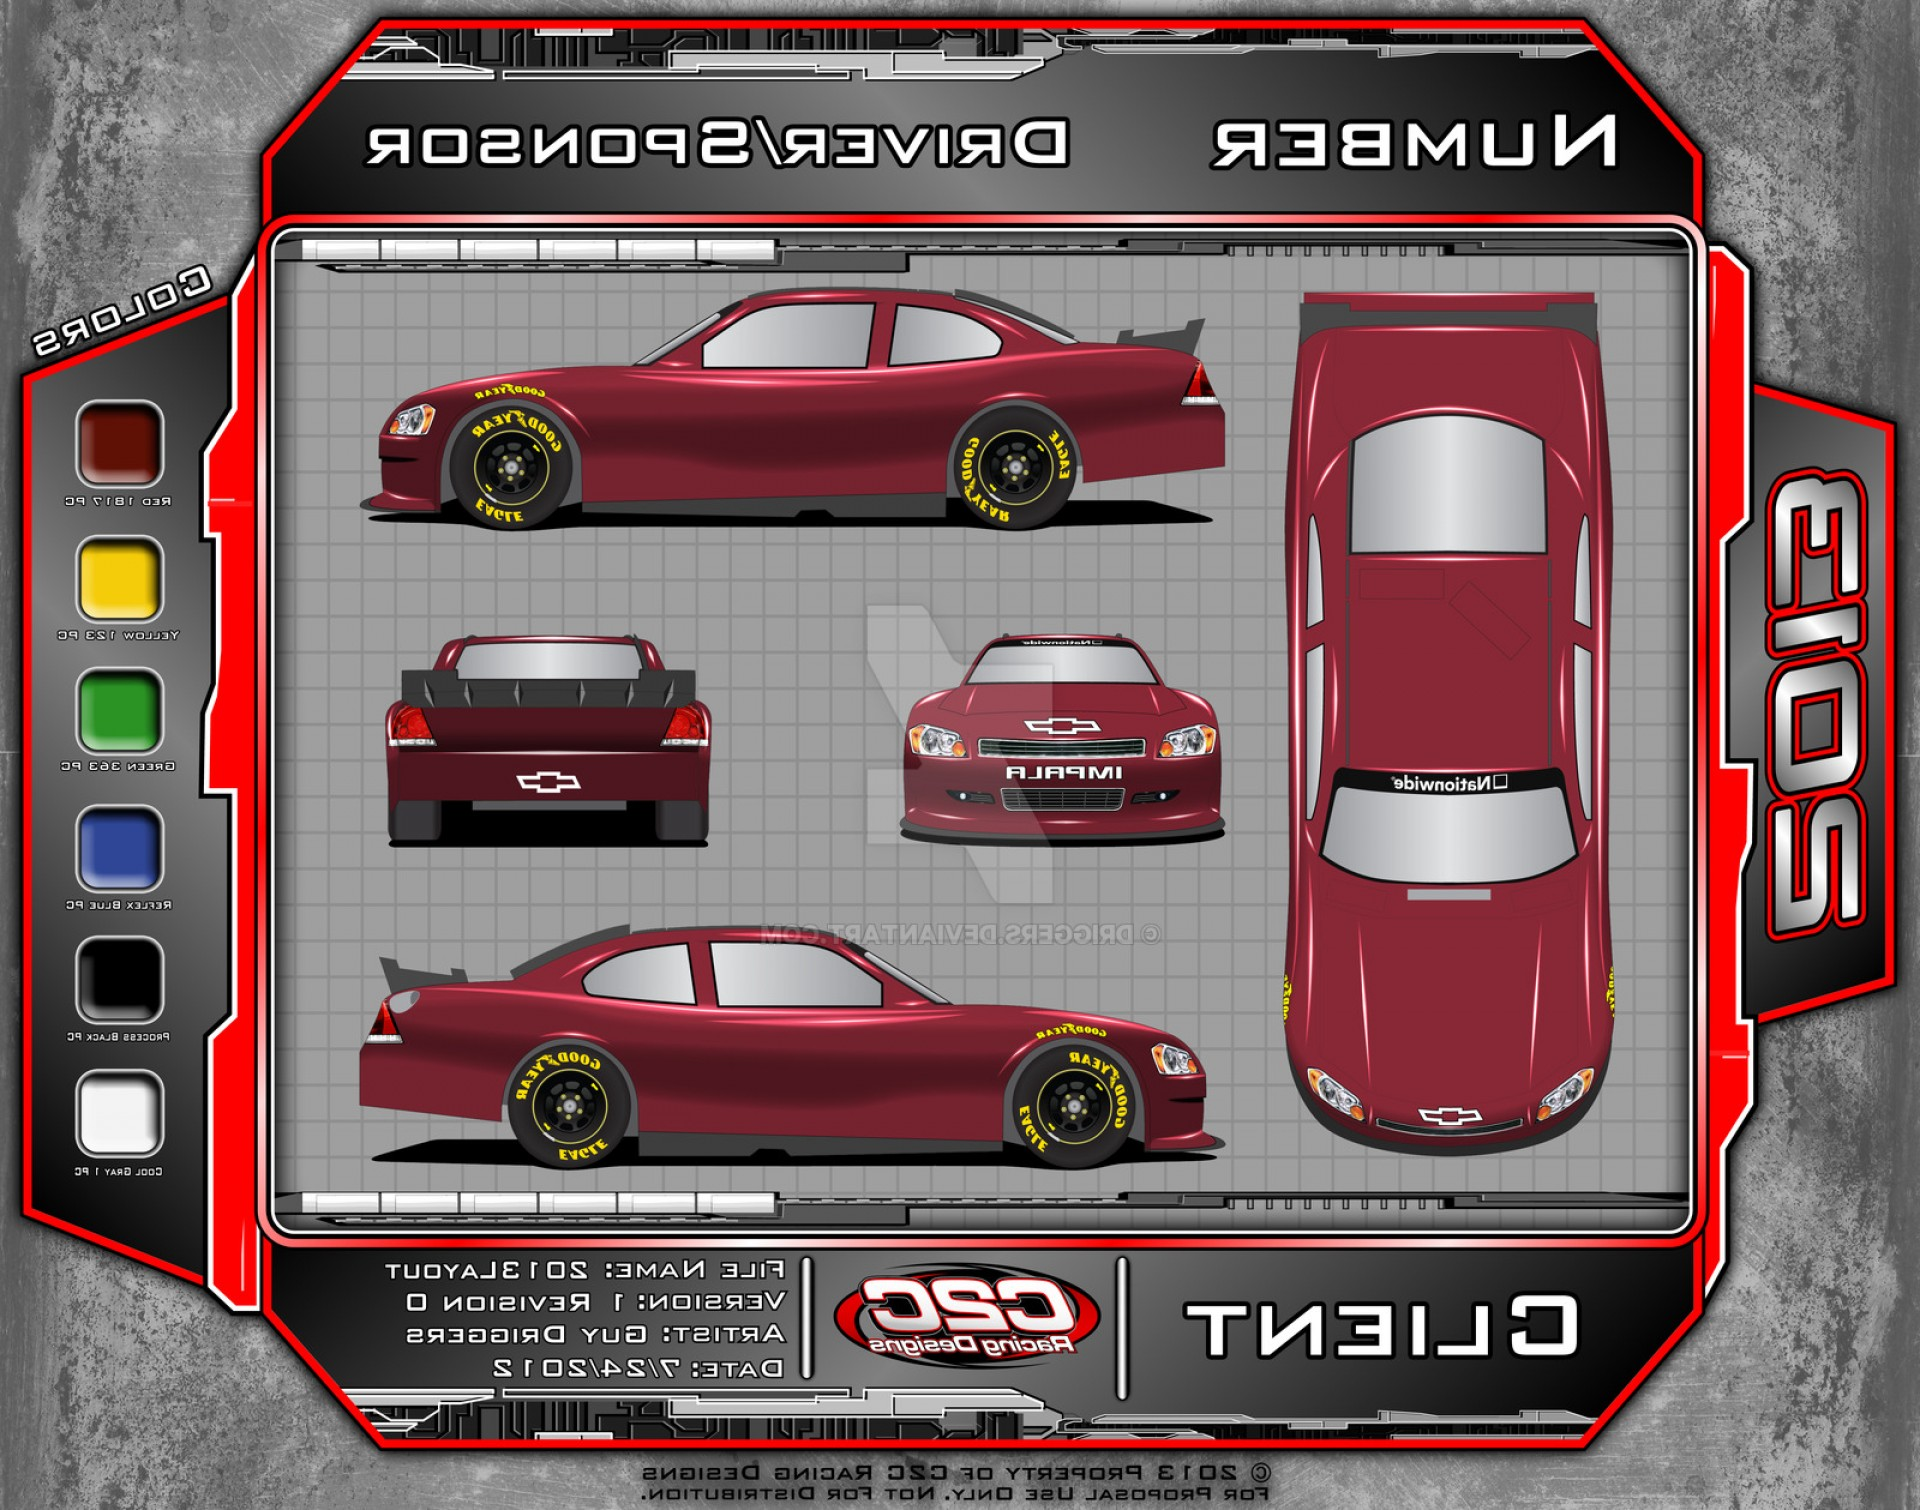 Late Model Race Car Vector Art: Cc Racing Designs Template